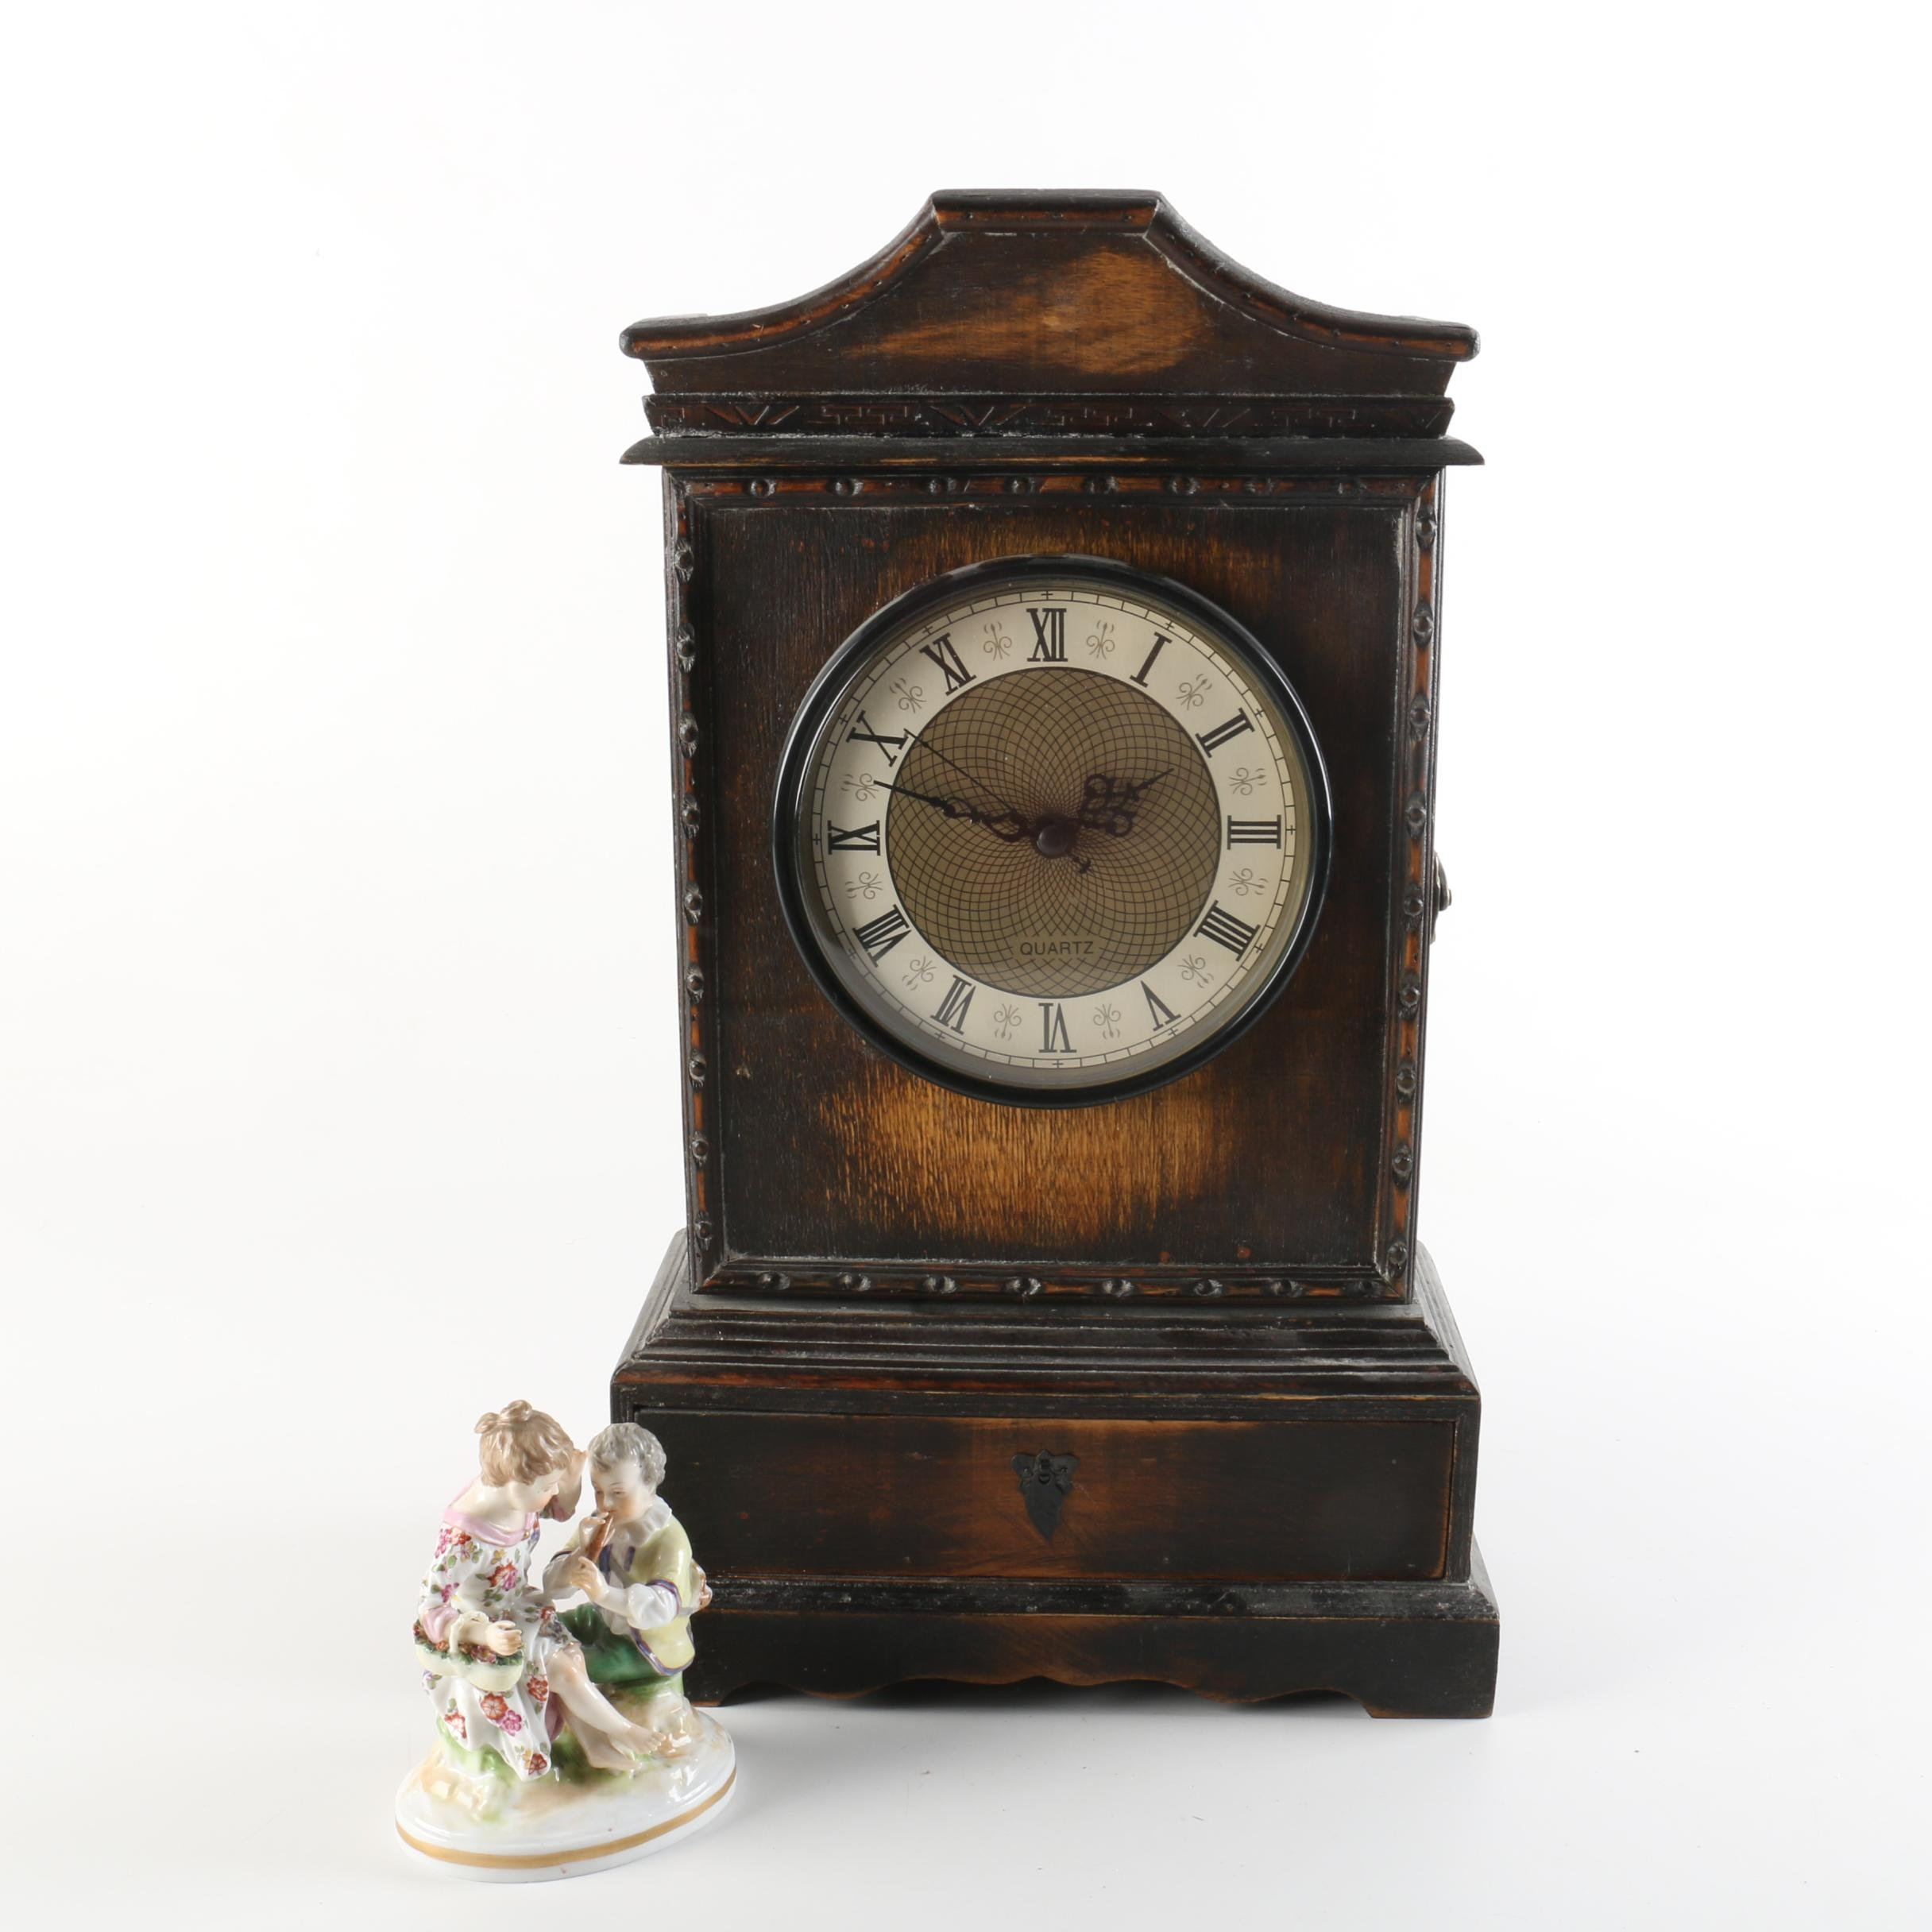 Mantel Clock and Ludwigsburg Porcelain Figurine